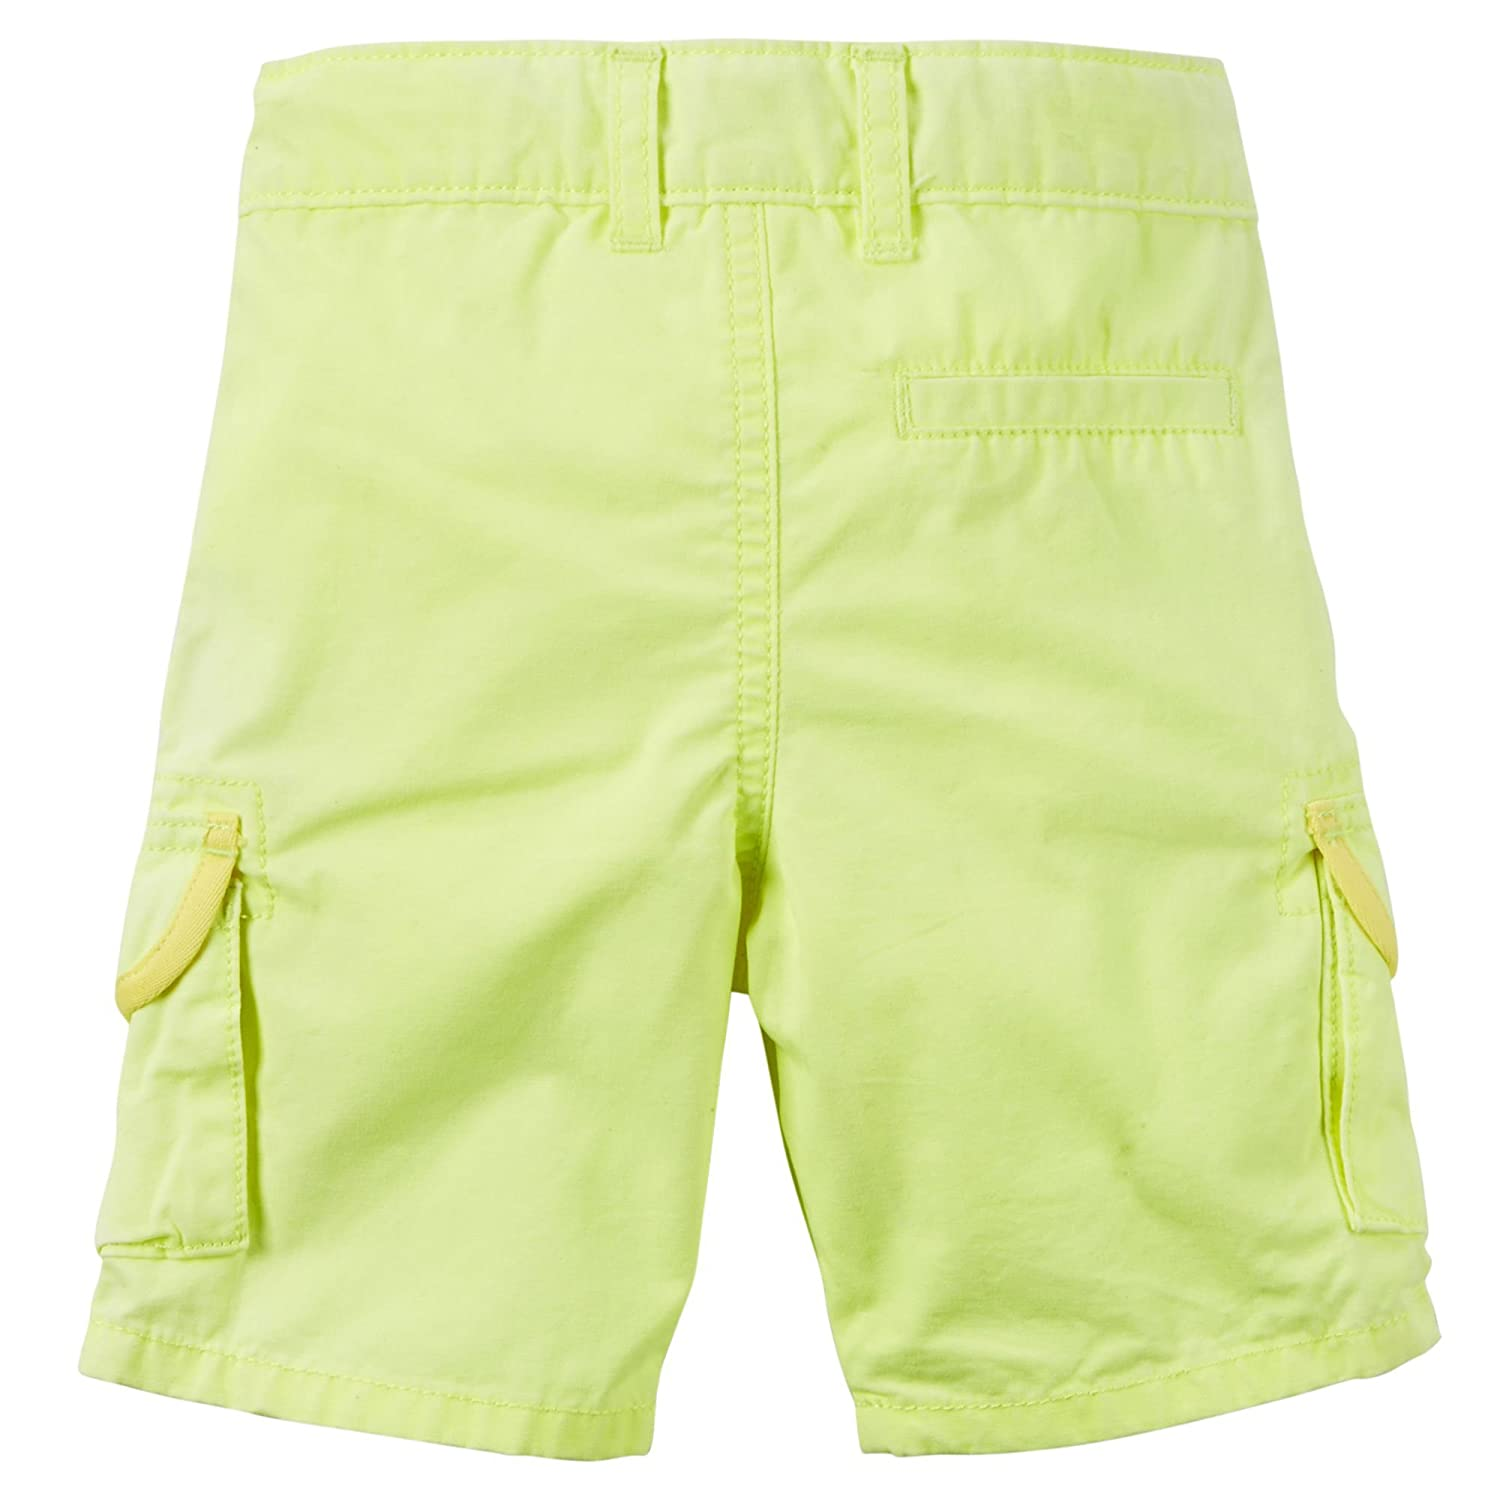 Carters Baby Boys Yellow Canvas Cargo Shorts 3 Months